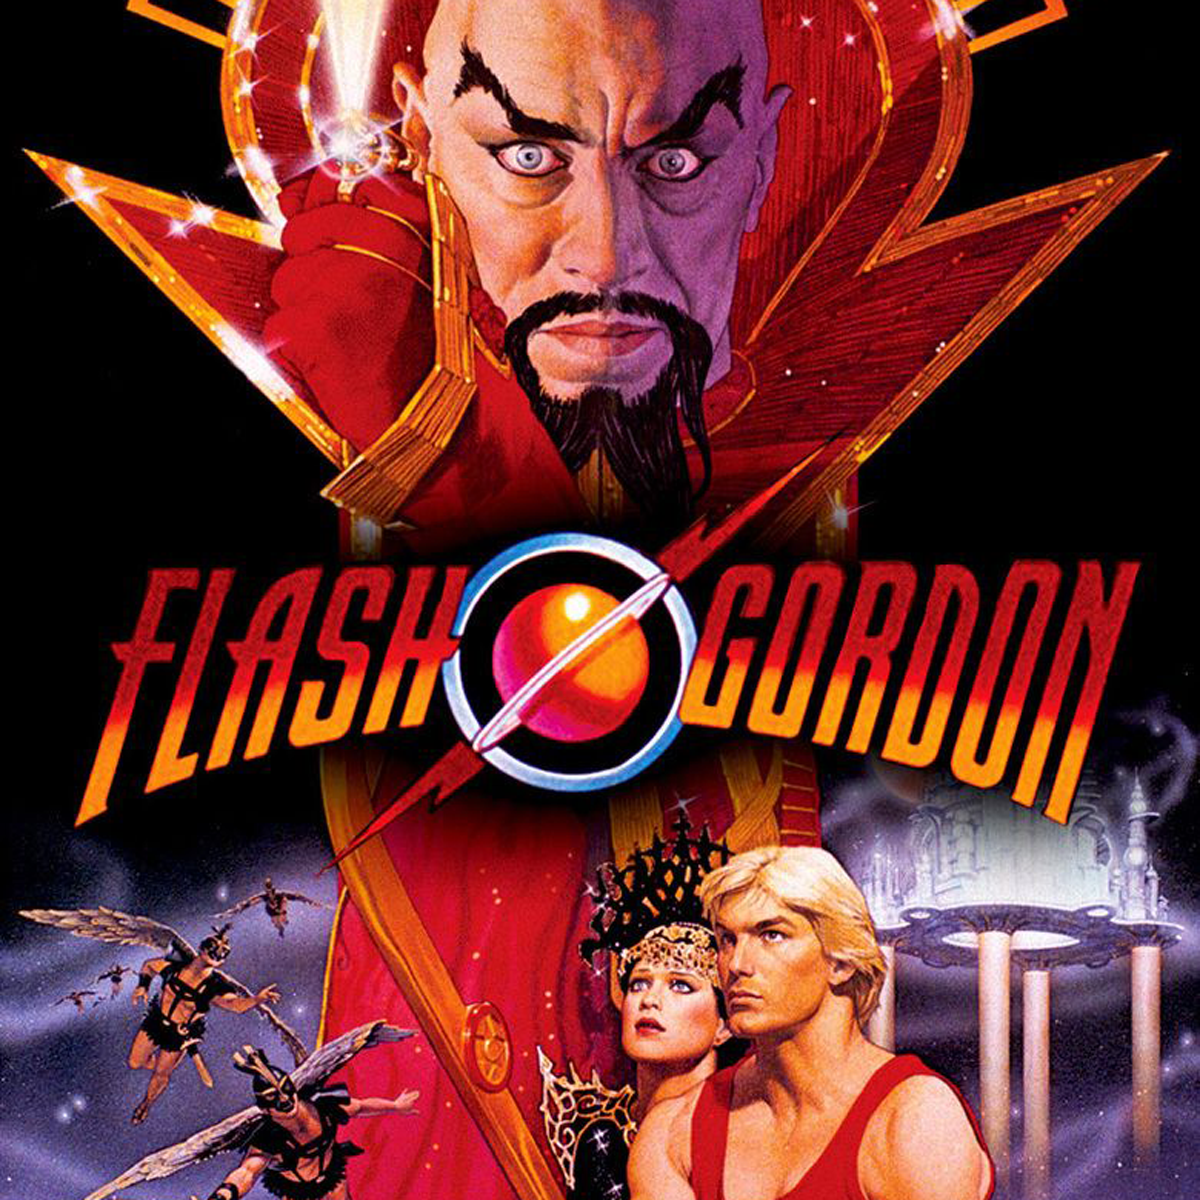 Flash Gordon ISTYA review